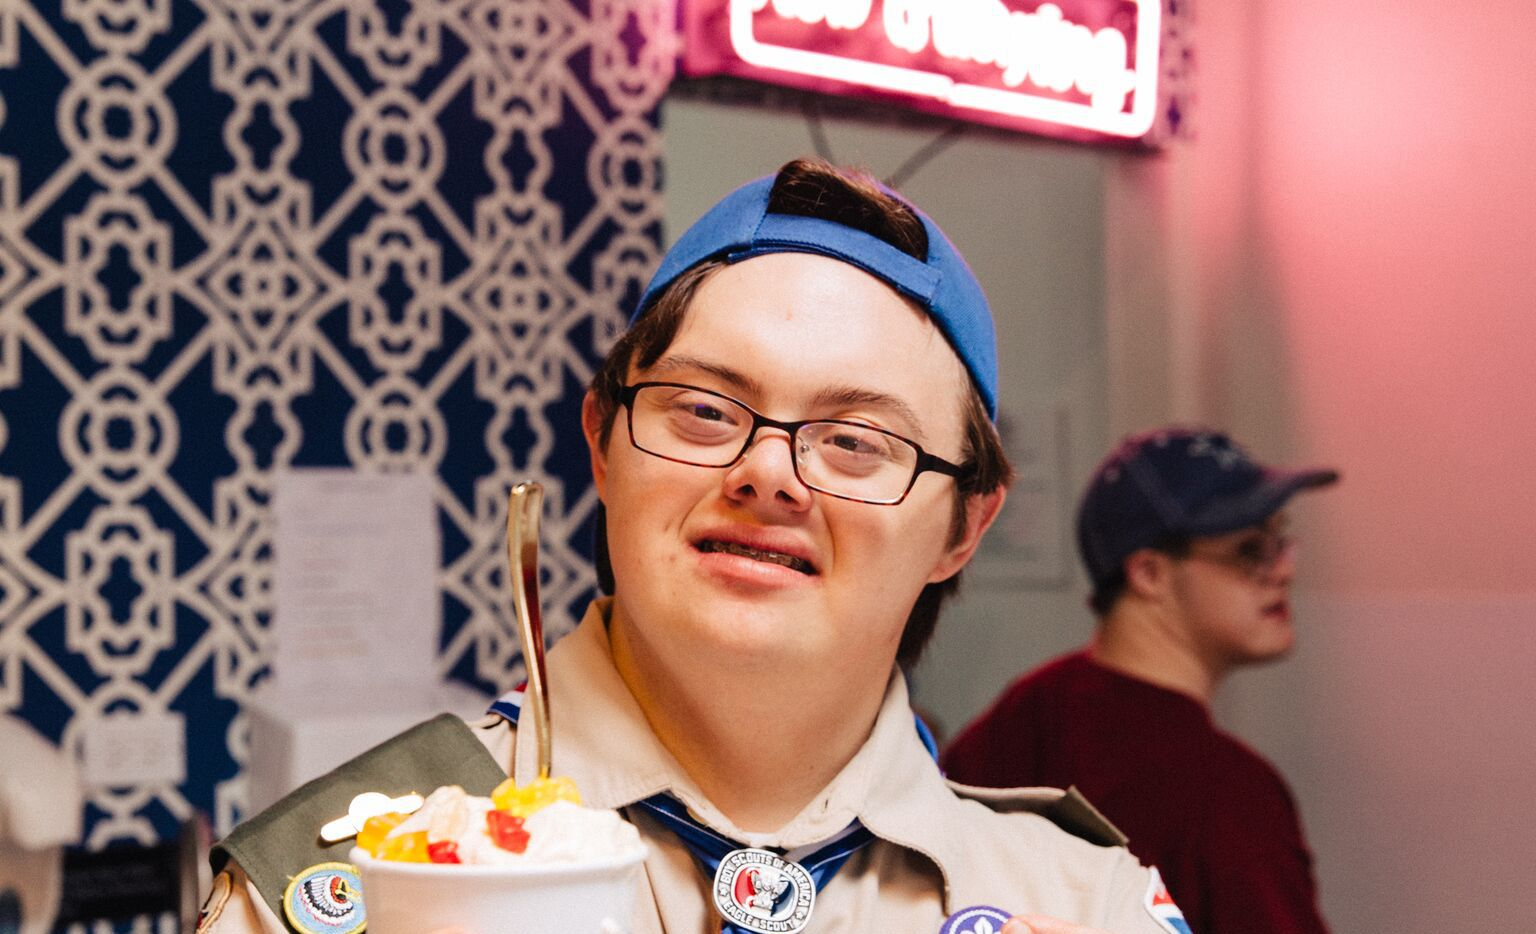 Coleman Jones is a vice president at Howdy Homemade ice cream shop.